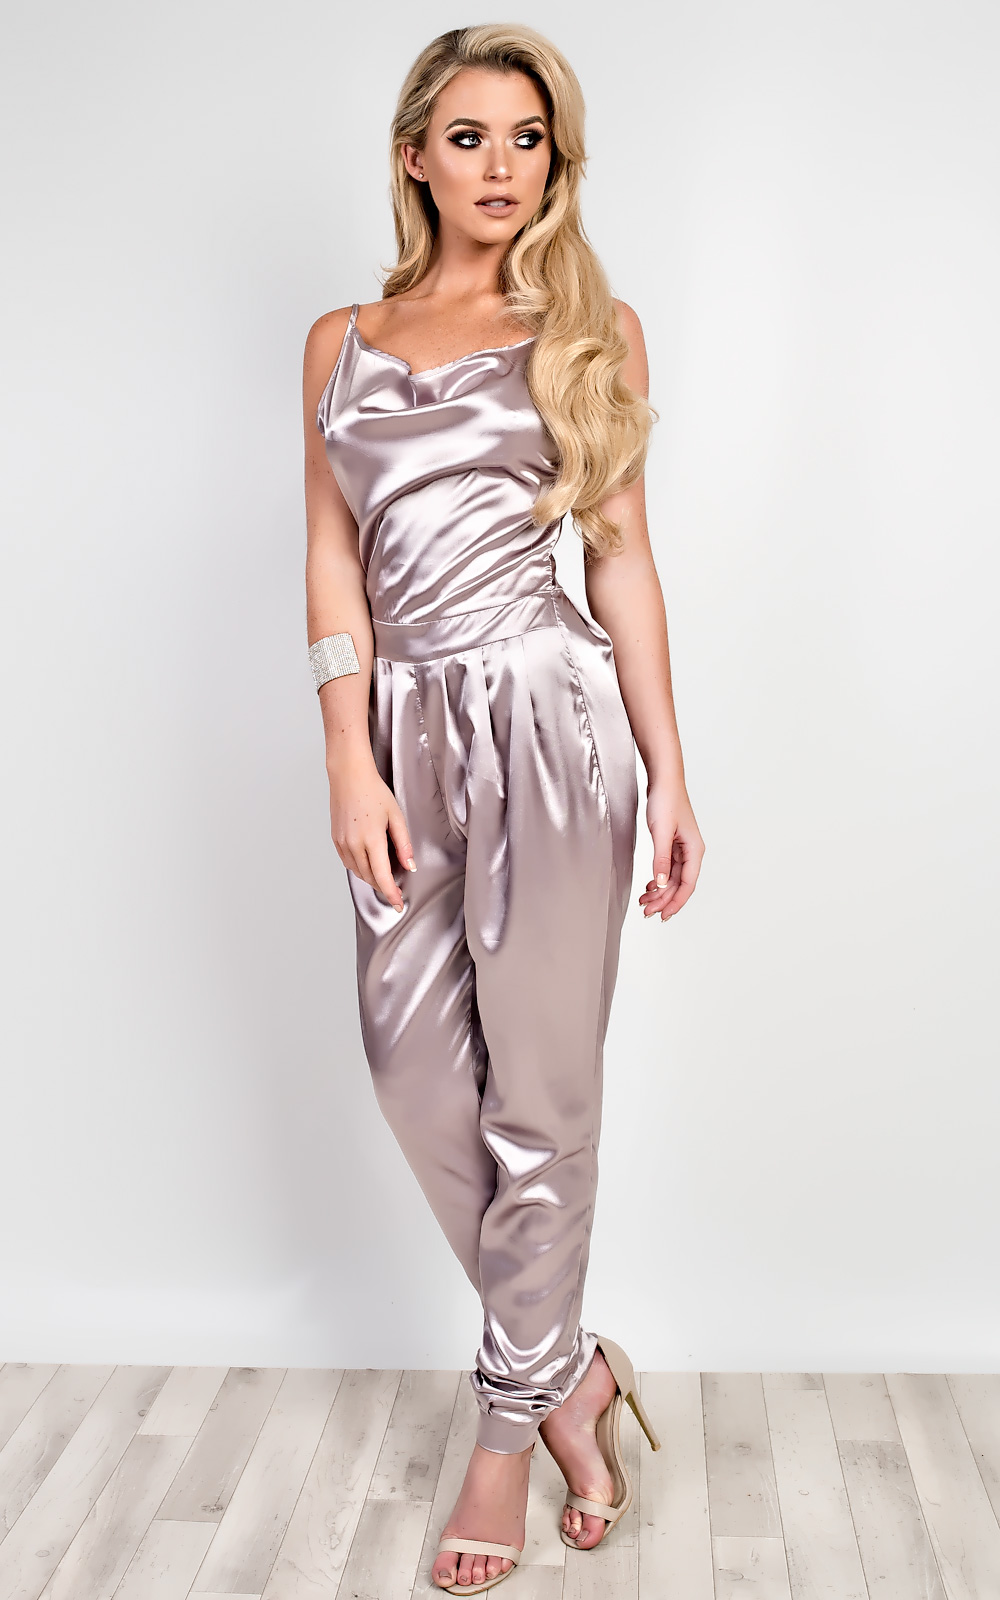 Women039s Ladies Stunning Glam Satin Jumpsuit - <span itemprop=availableAtOrFrom>Glasgow, United Kingdom</span> - If you change your mind about a product or find the size isn't quite right, you can return it to us. We are happy to accept returns that are received within 30 days of delivery for full p - Glasgow, United Kingdom